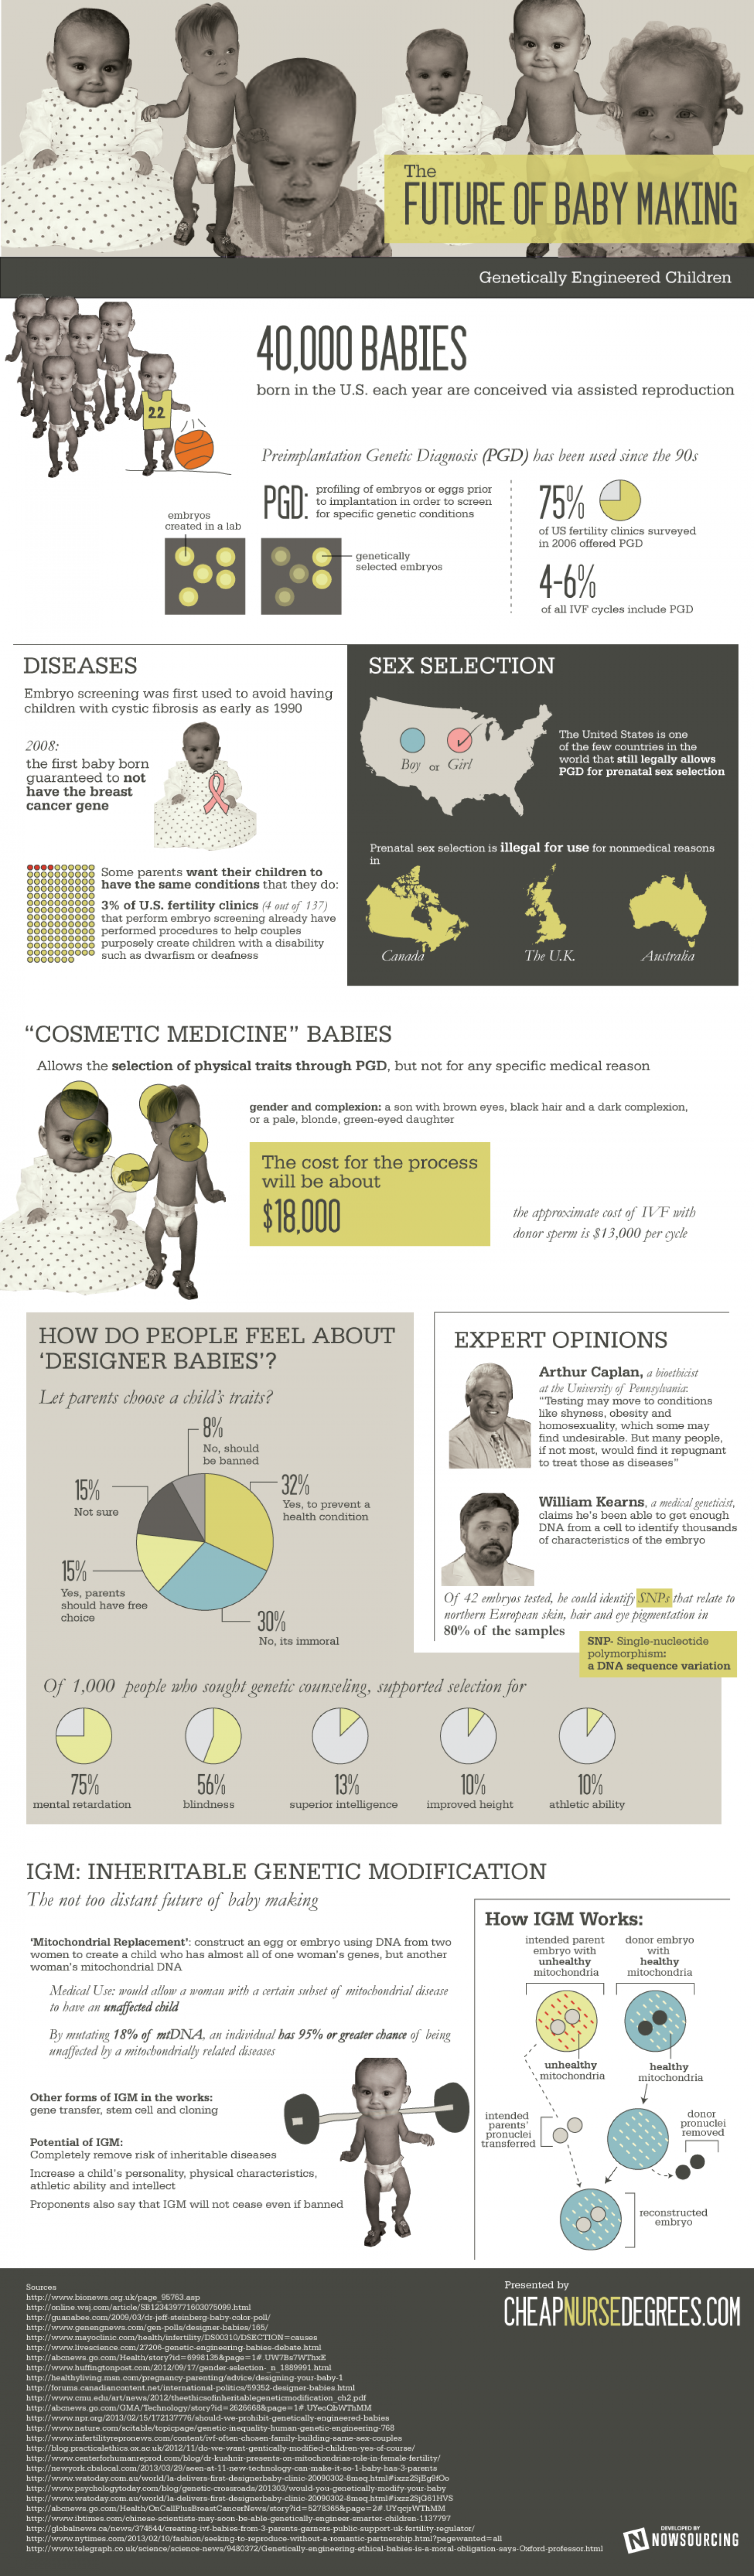 The Future of Baby Making Infographic